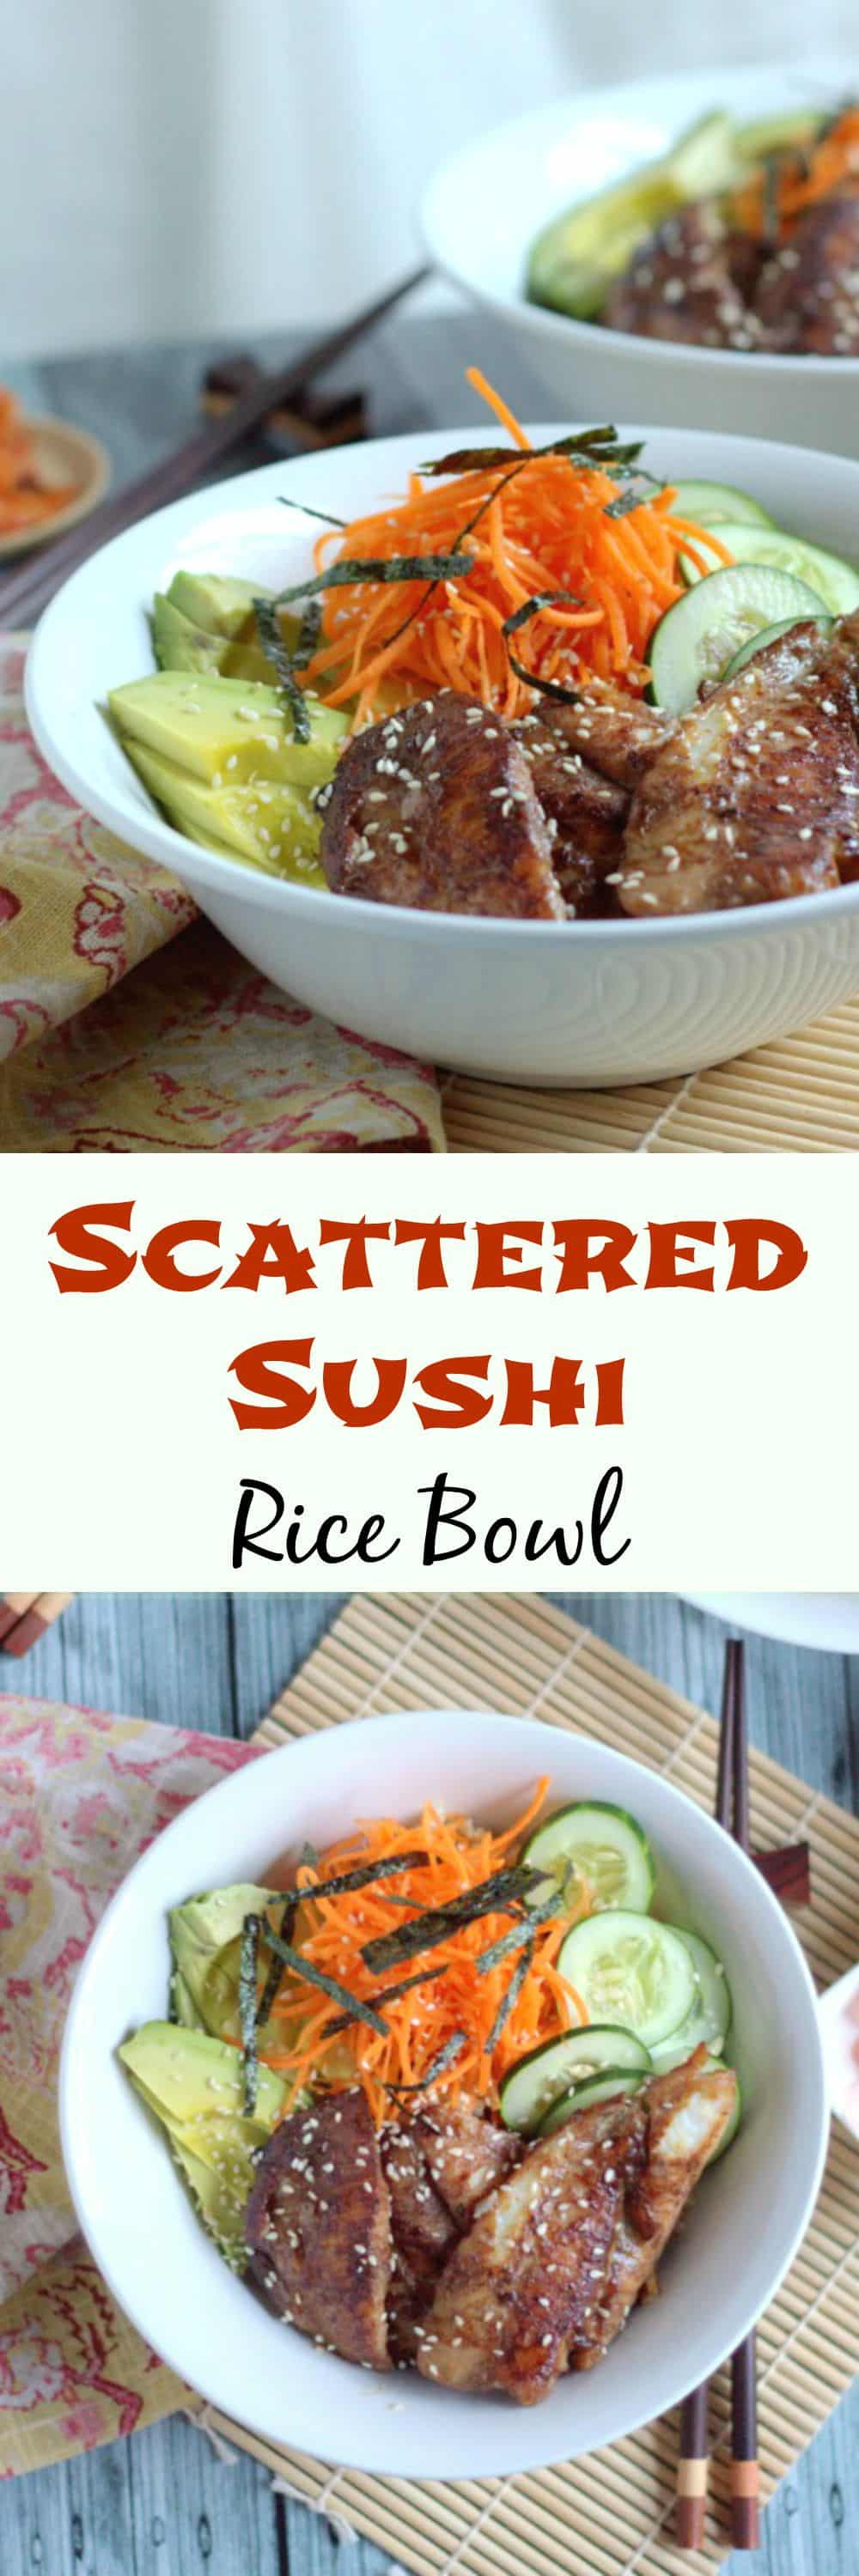 Scattered Sushi Rice Bowl. Fantastic for those times that you really can't be bothered rolling sushi.